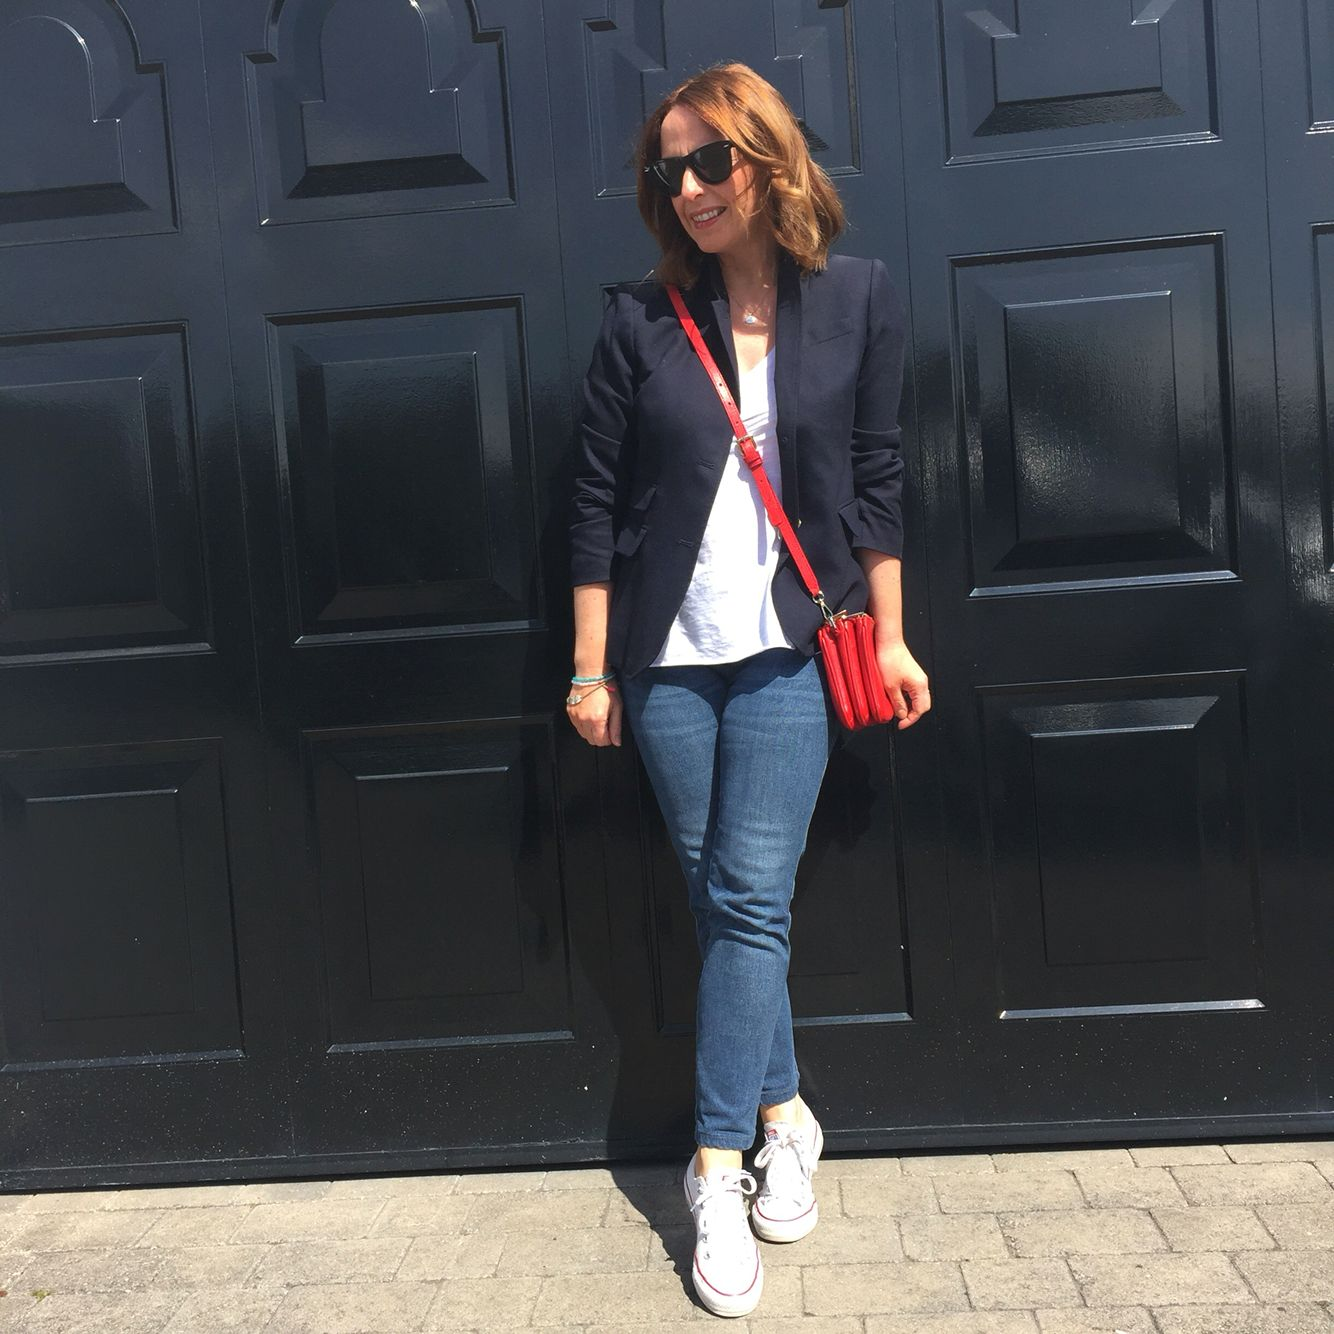 Keeping it simple in blazer jeans white tshirt converse and a red crossbody  bag 55ded68a02a48